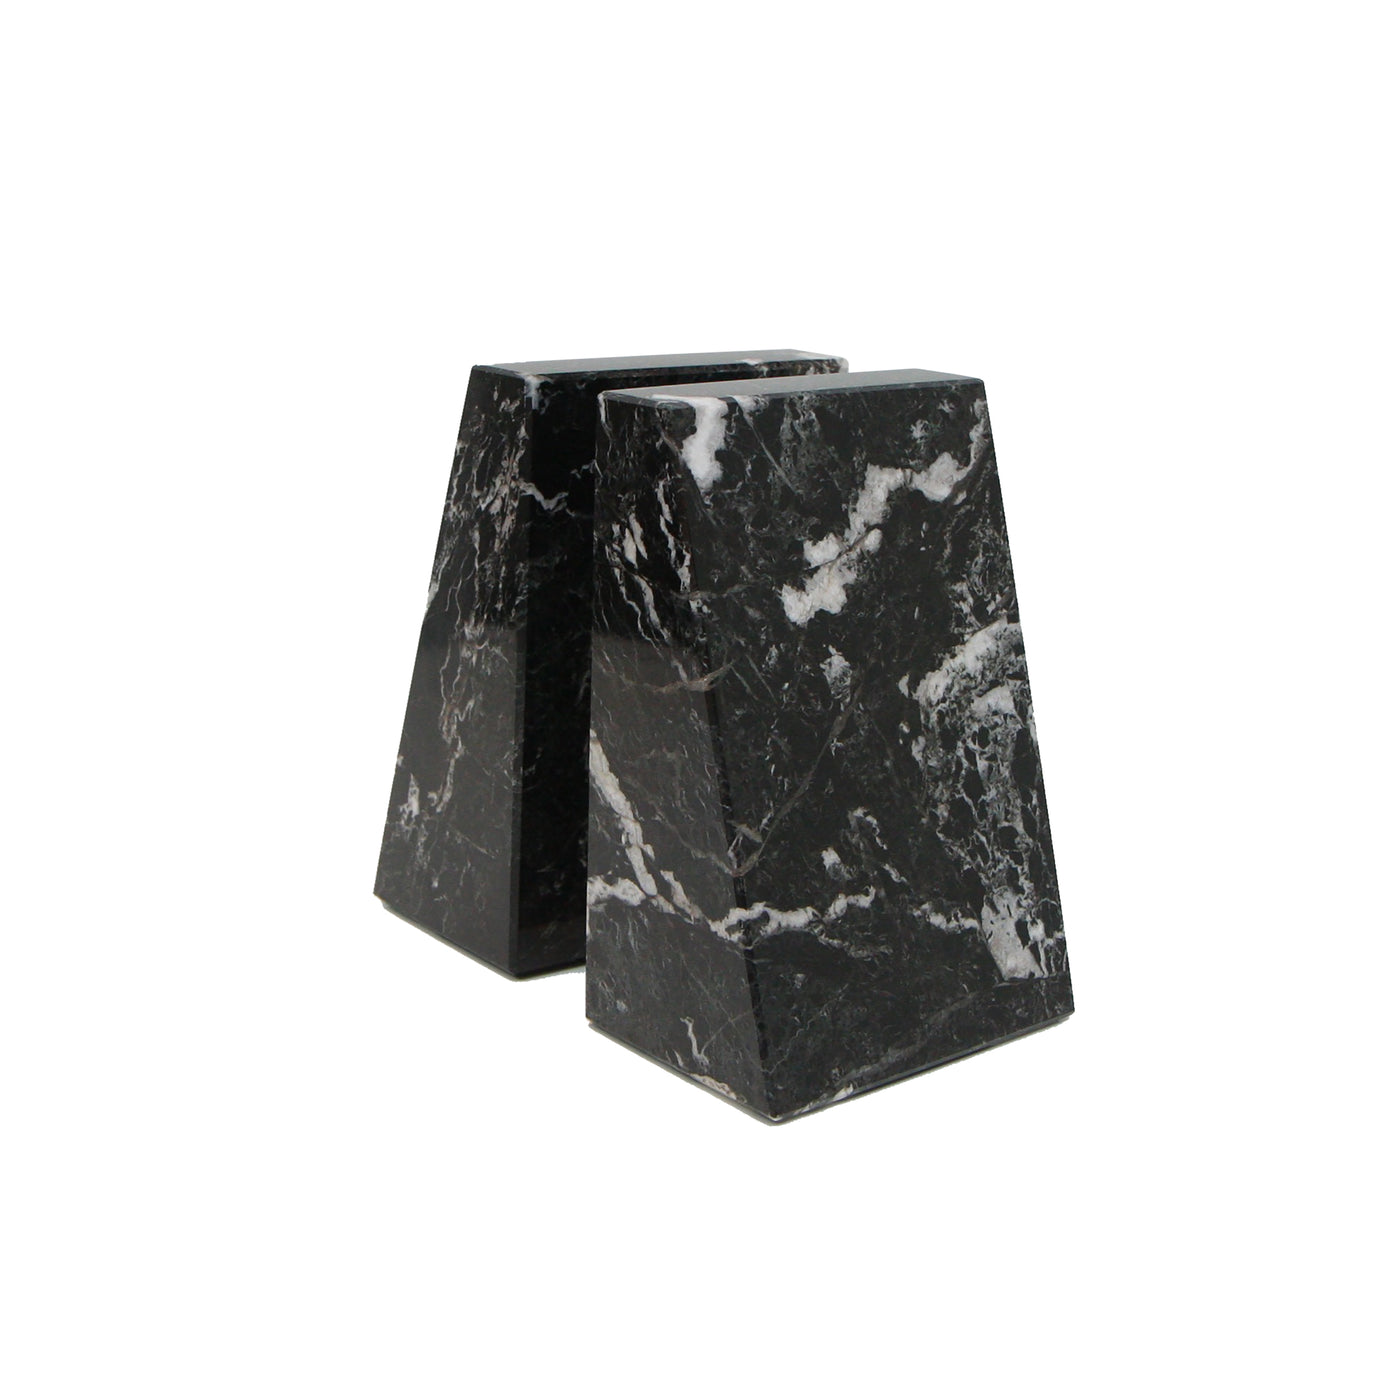 Zeus Bookends - Black Zebra Marble